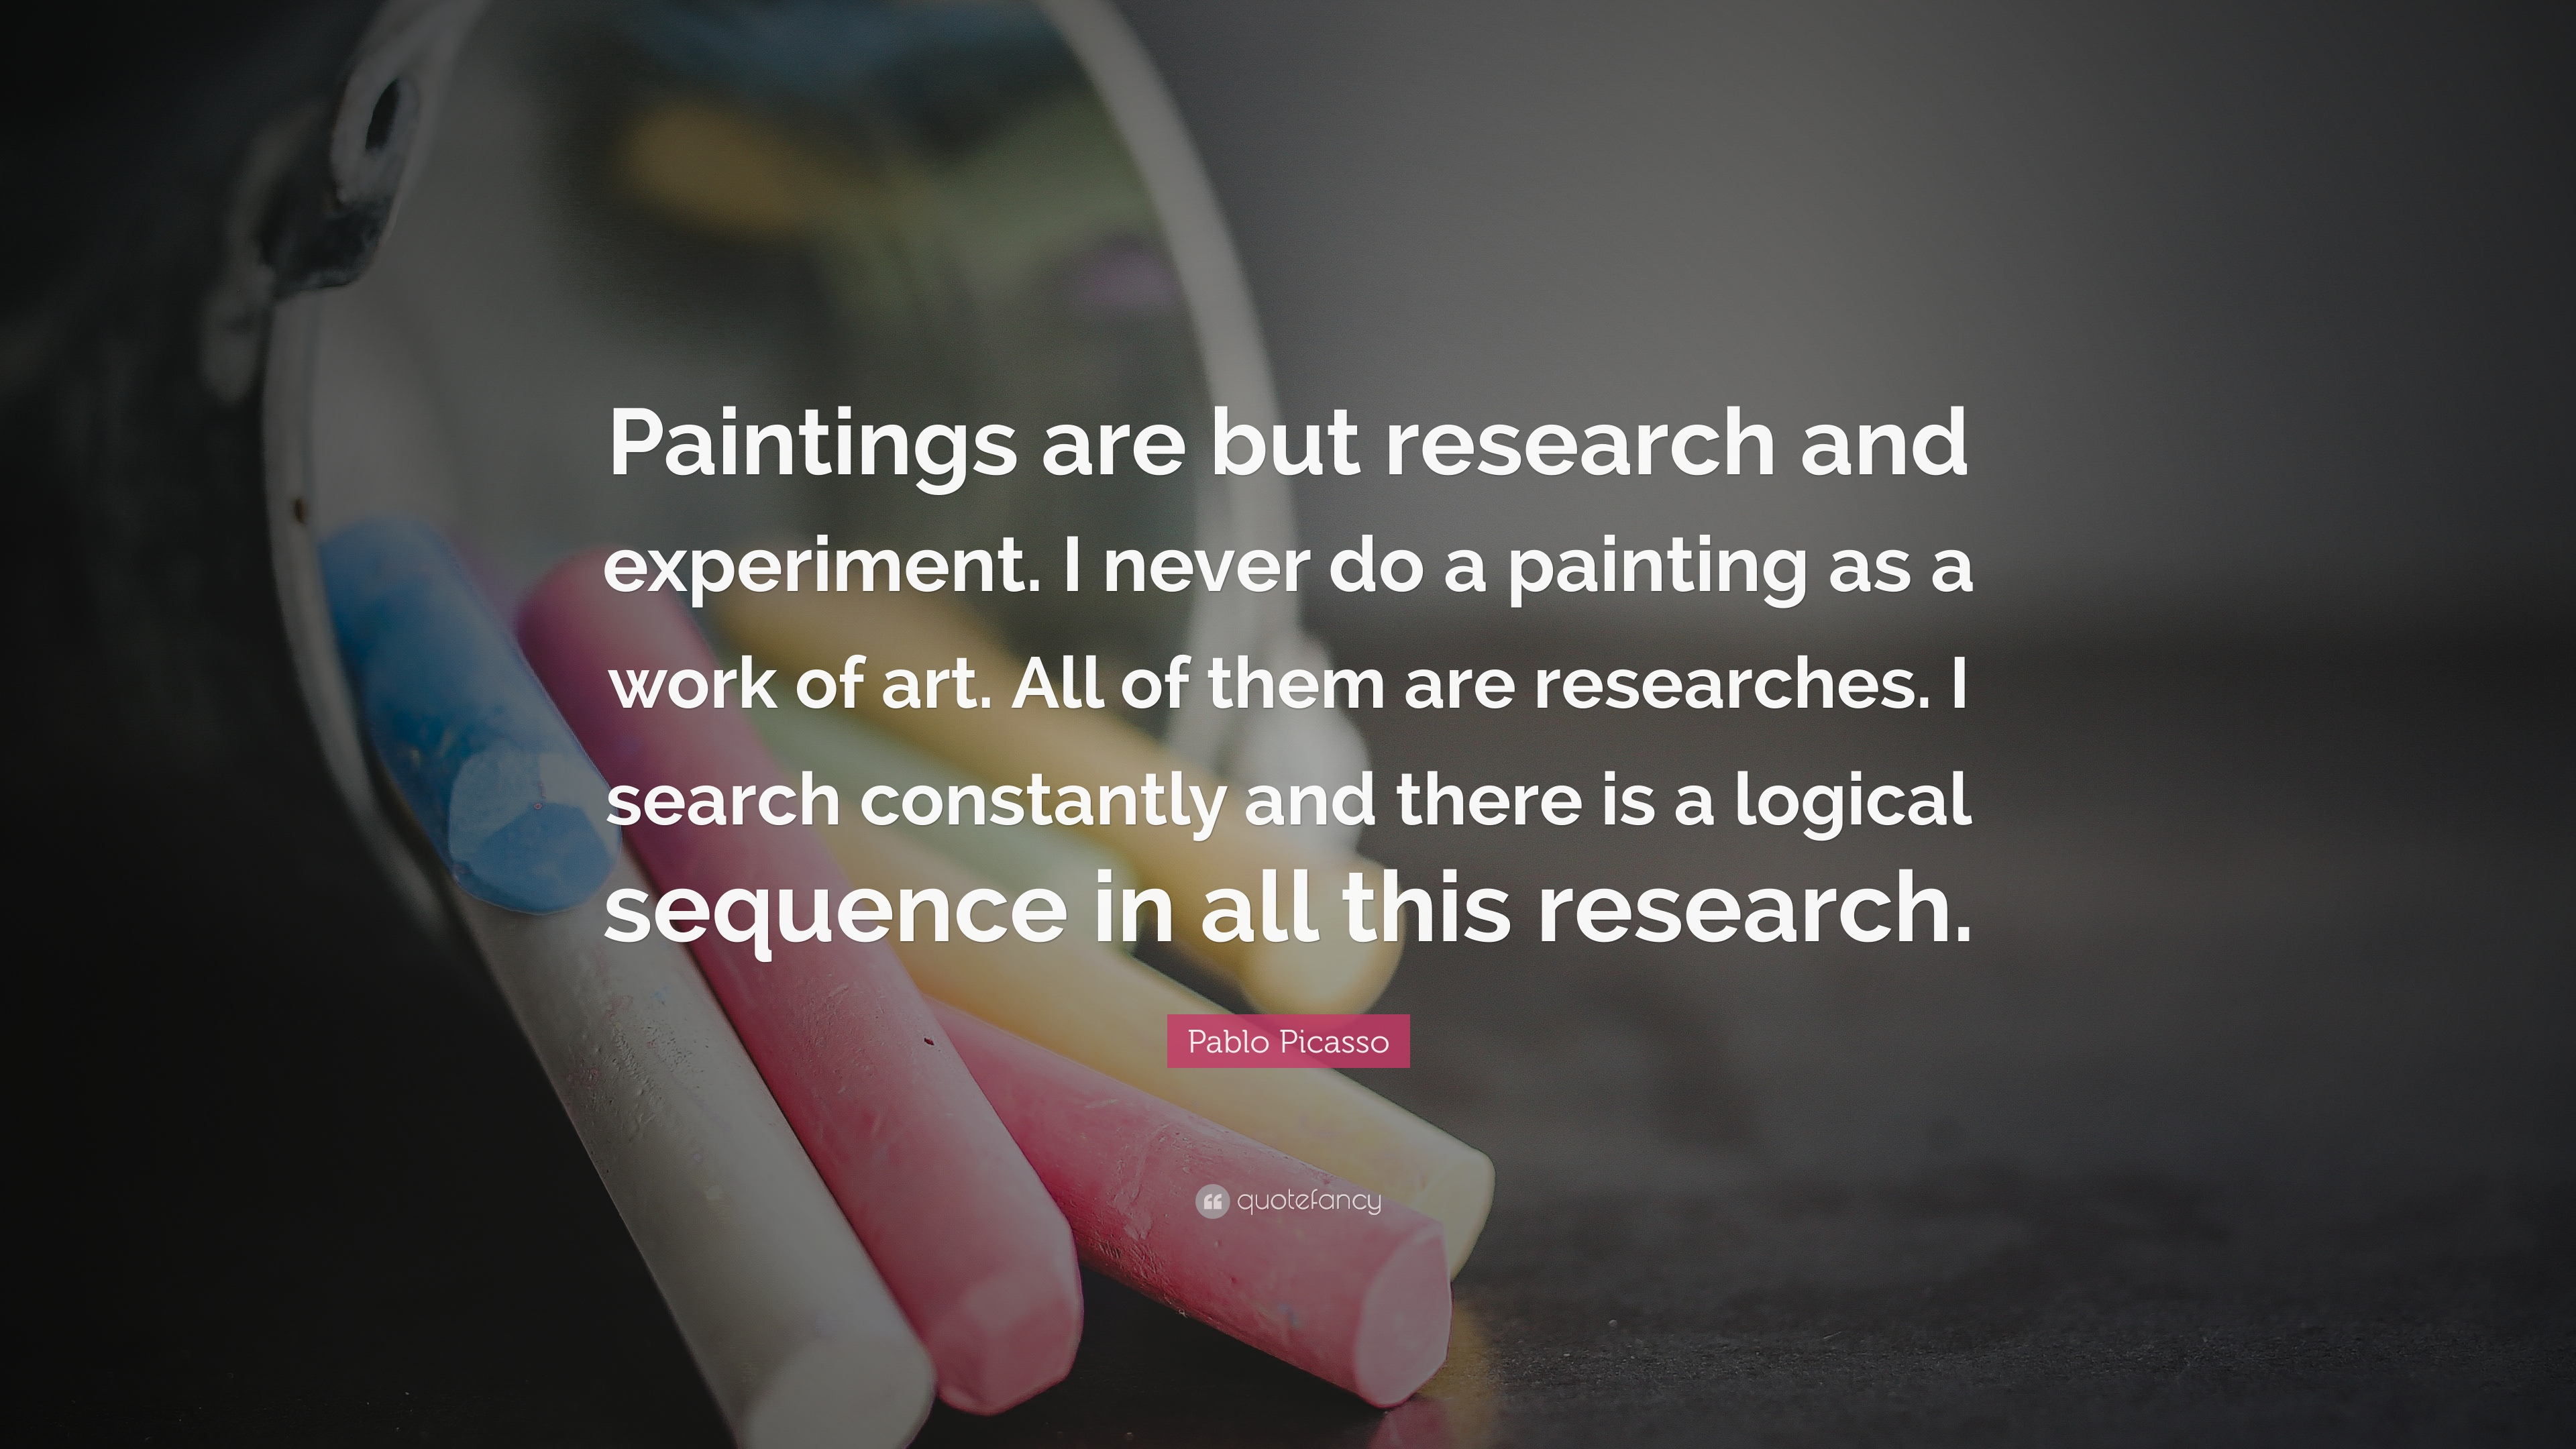 Pablo Picasso Quote \u201cPaintings are but research and